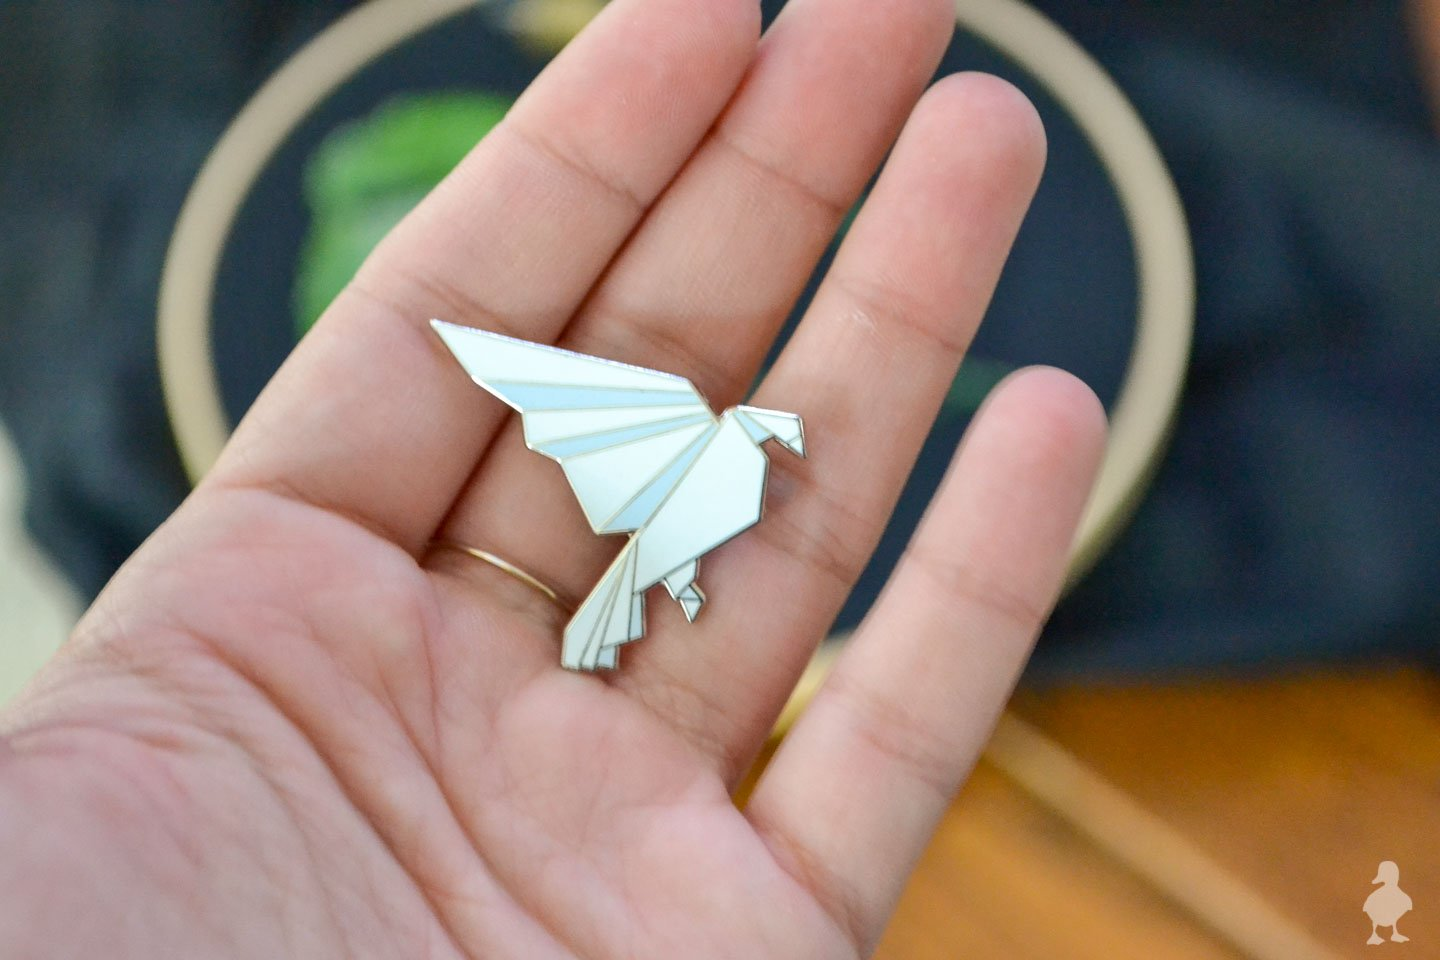 holding white origami lapel pin